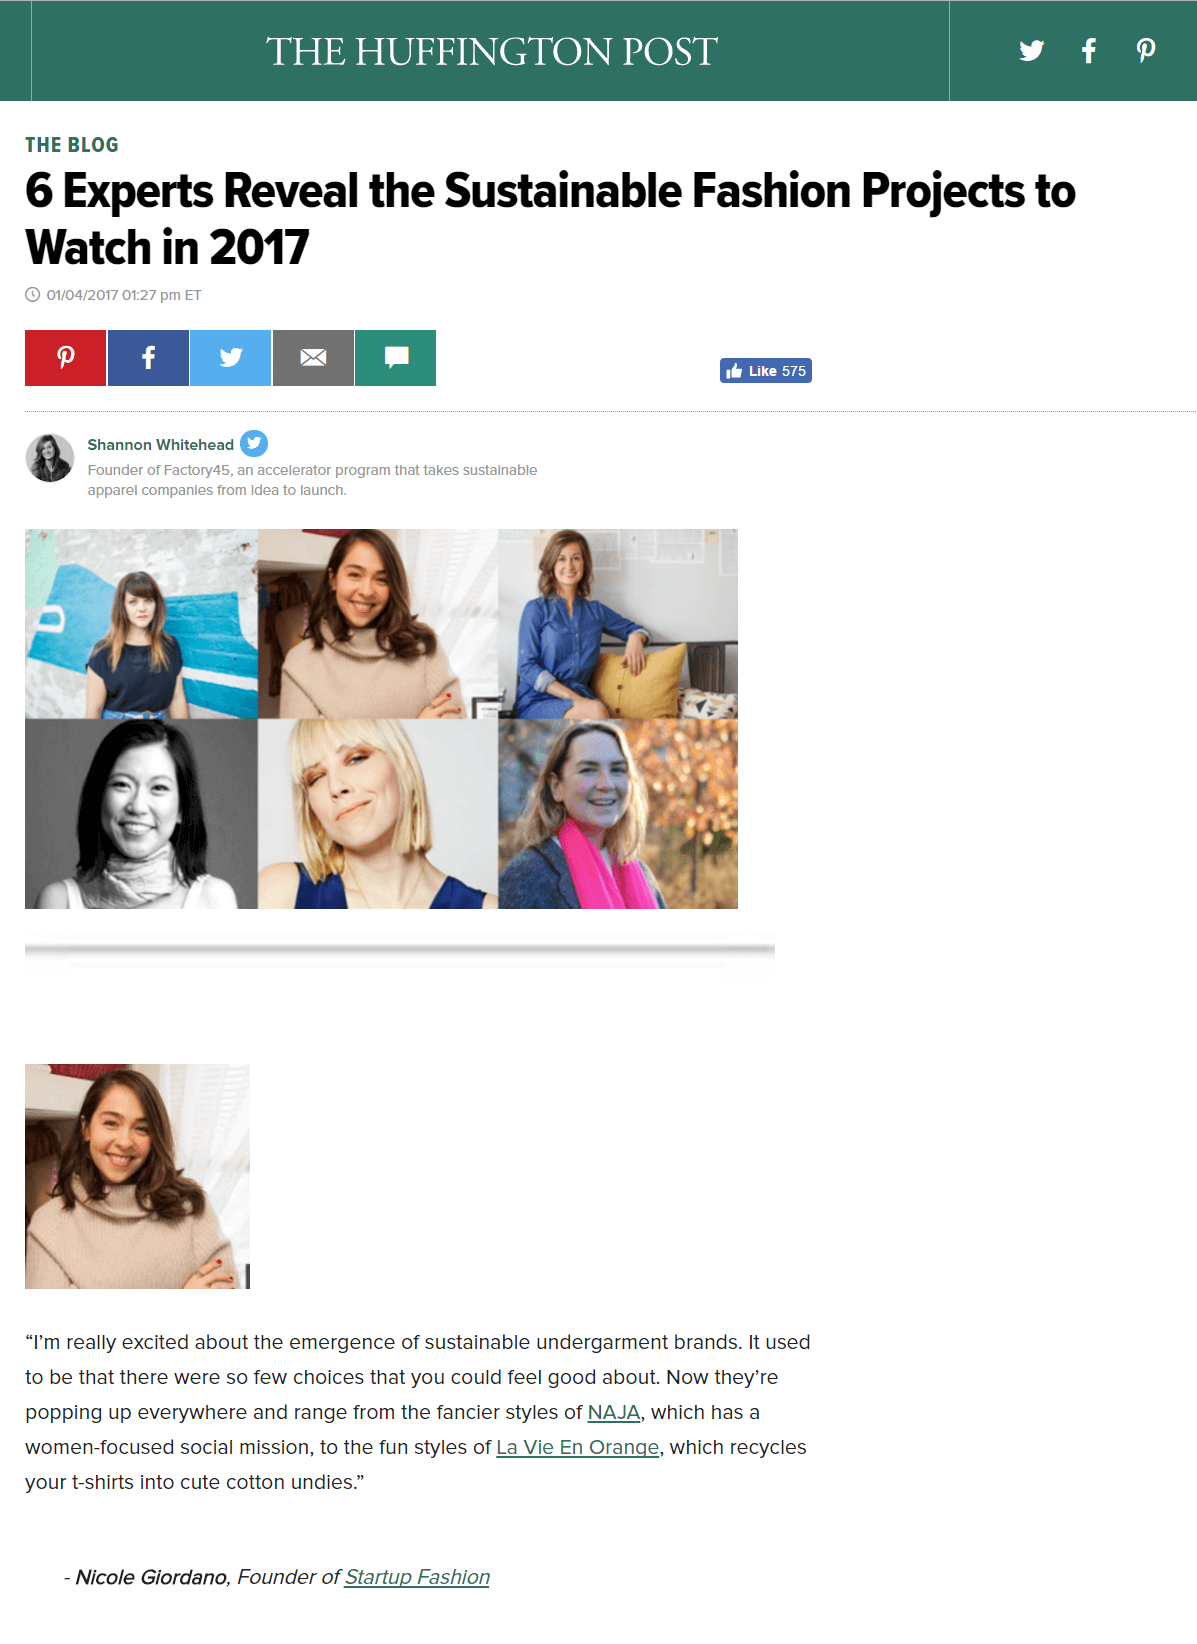 Huffington Post | 6 Experts Reveal the Sustainable Fashion Projects to Watch in 2017 [La Vie en Orange screenshot of Huffington Post banner and article excerpts taken on January 10, 2017]